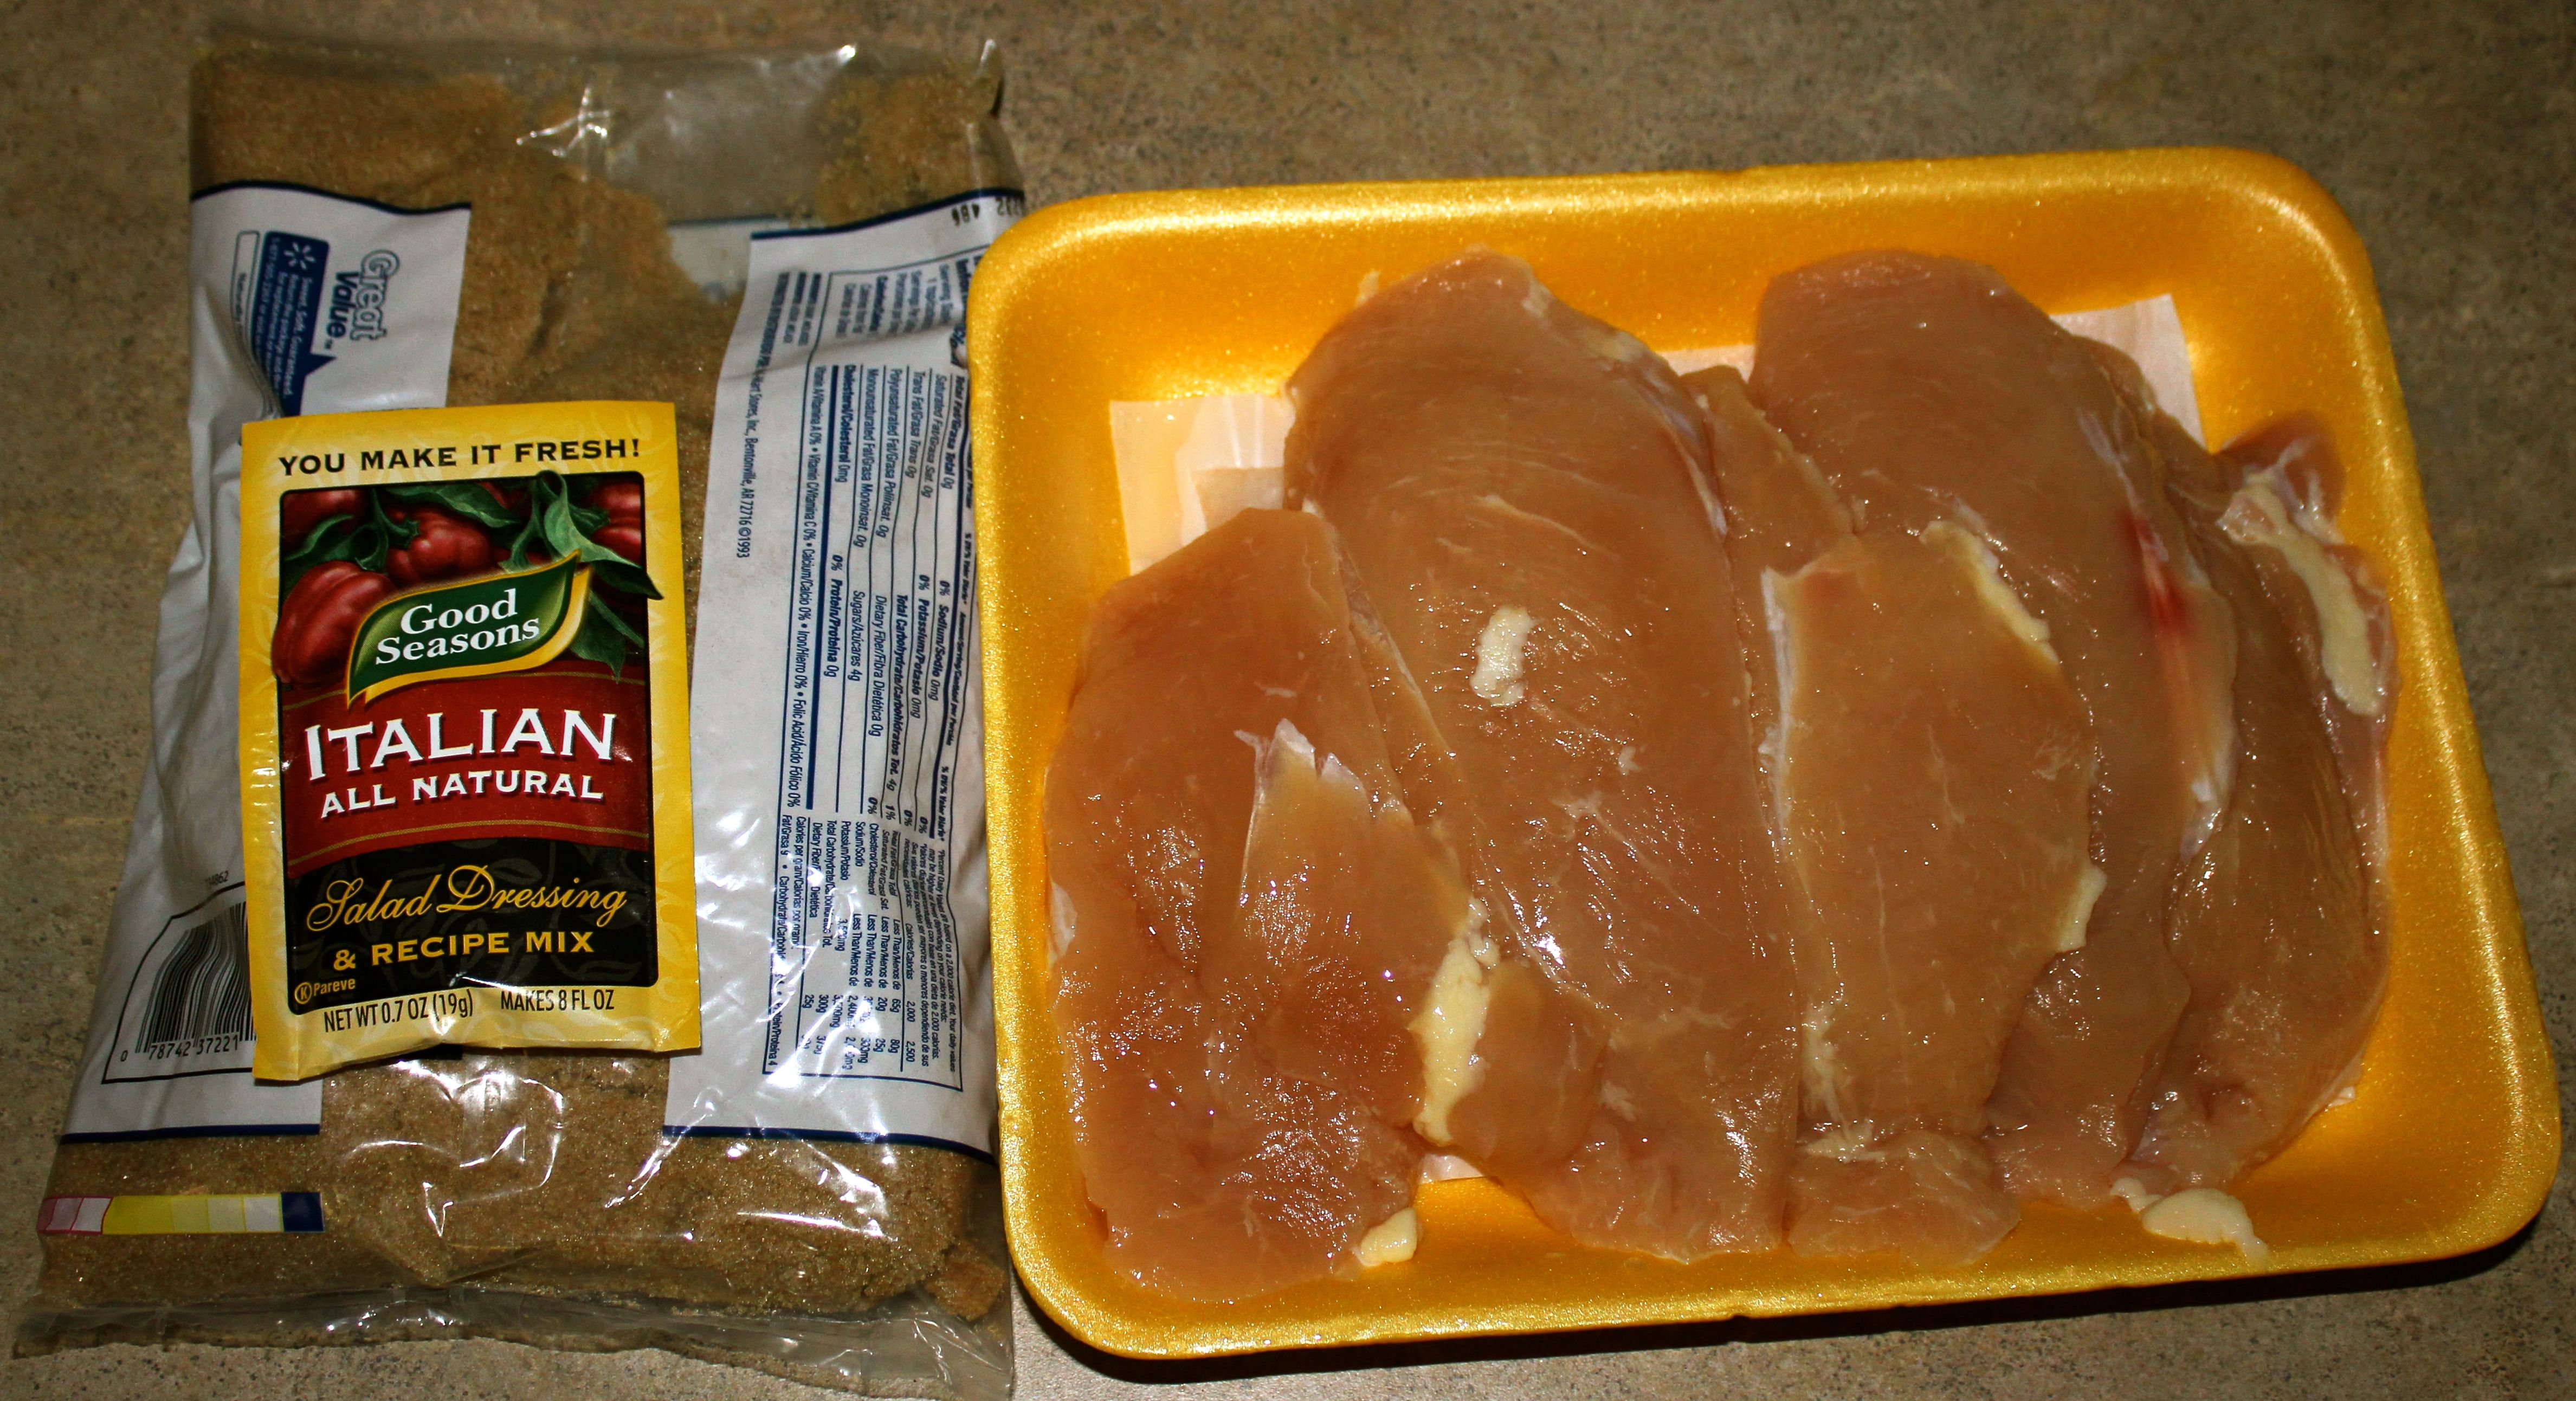 Italian Dressing Caramelized Chicken (in the oven for 25min) . . . A recipe for 2-3lbs chicken, so I'd have to halve the recipe for hubby's and my normal 1lb of chicken, but it still sounds really simple and delicious!